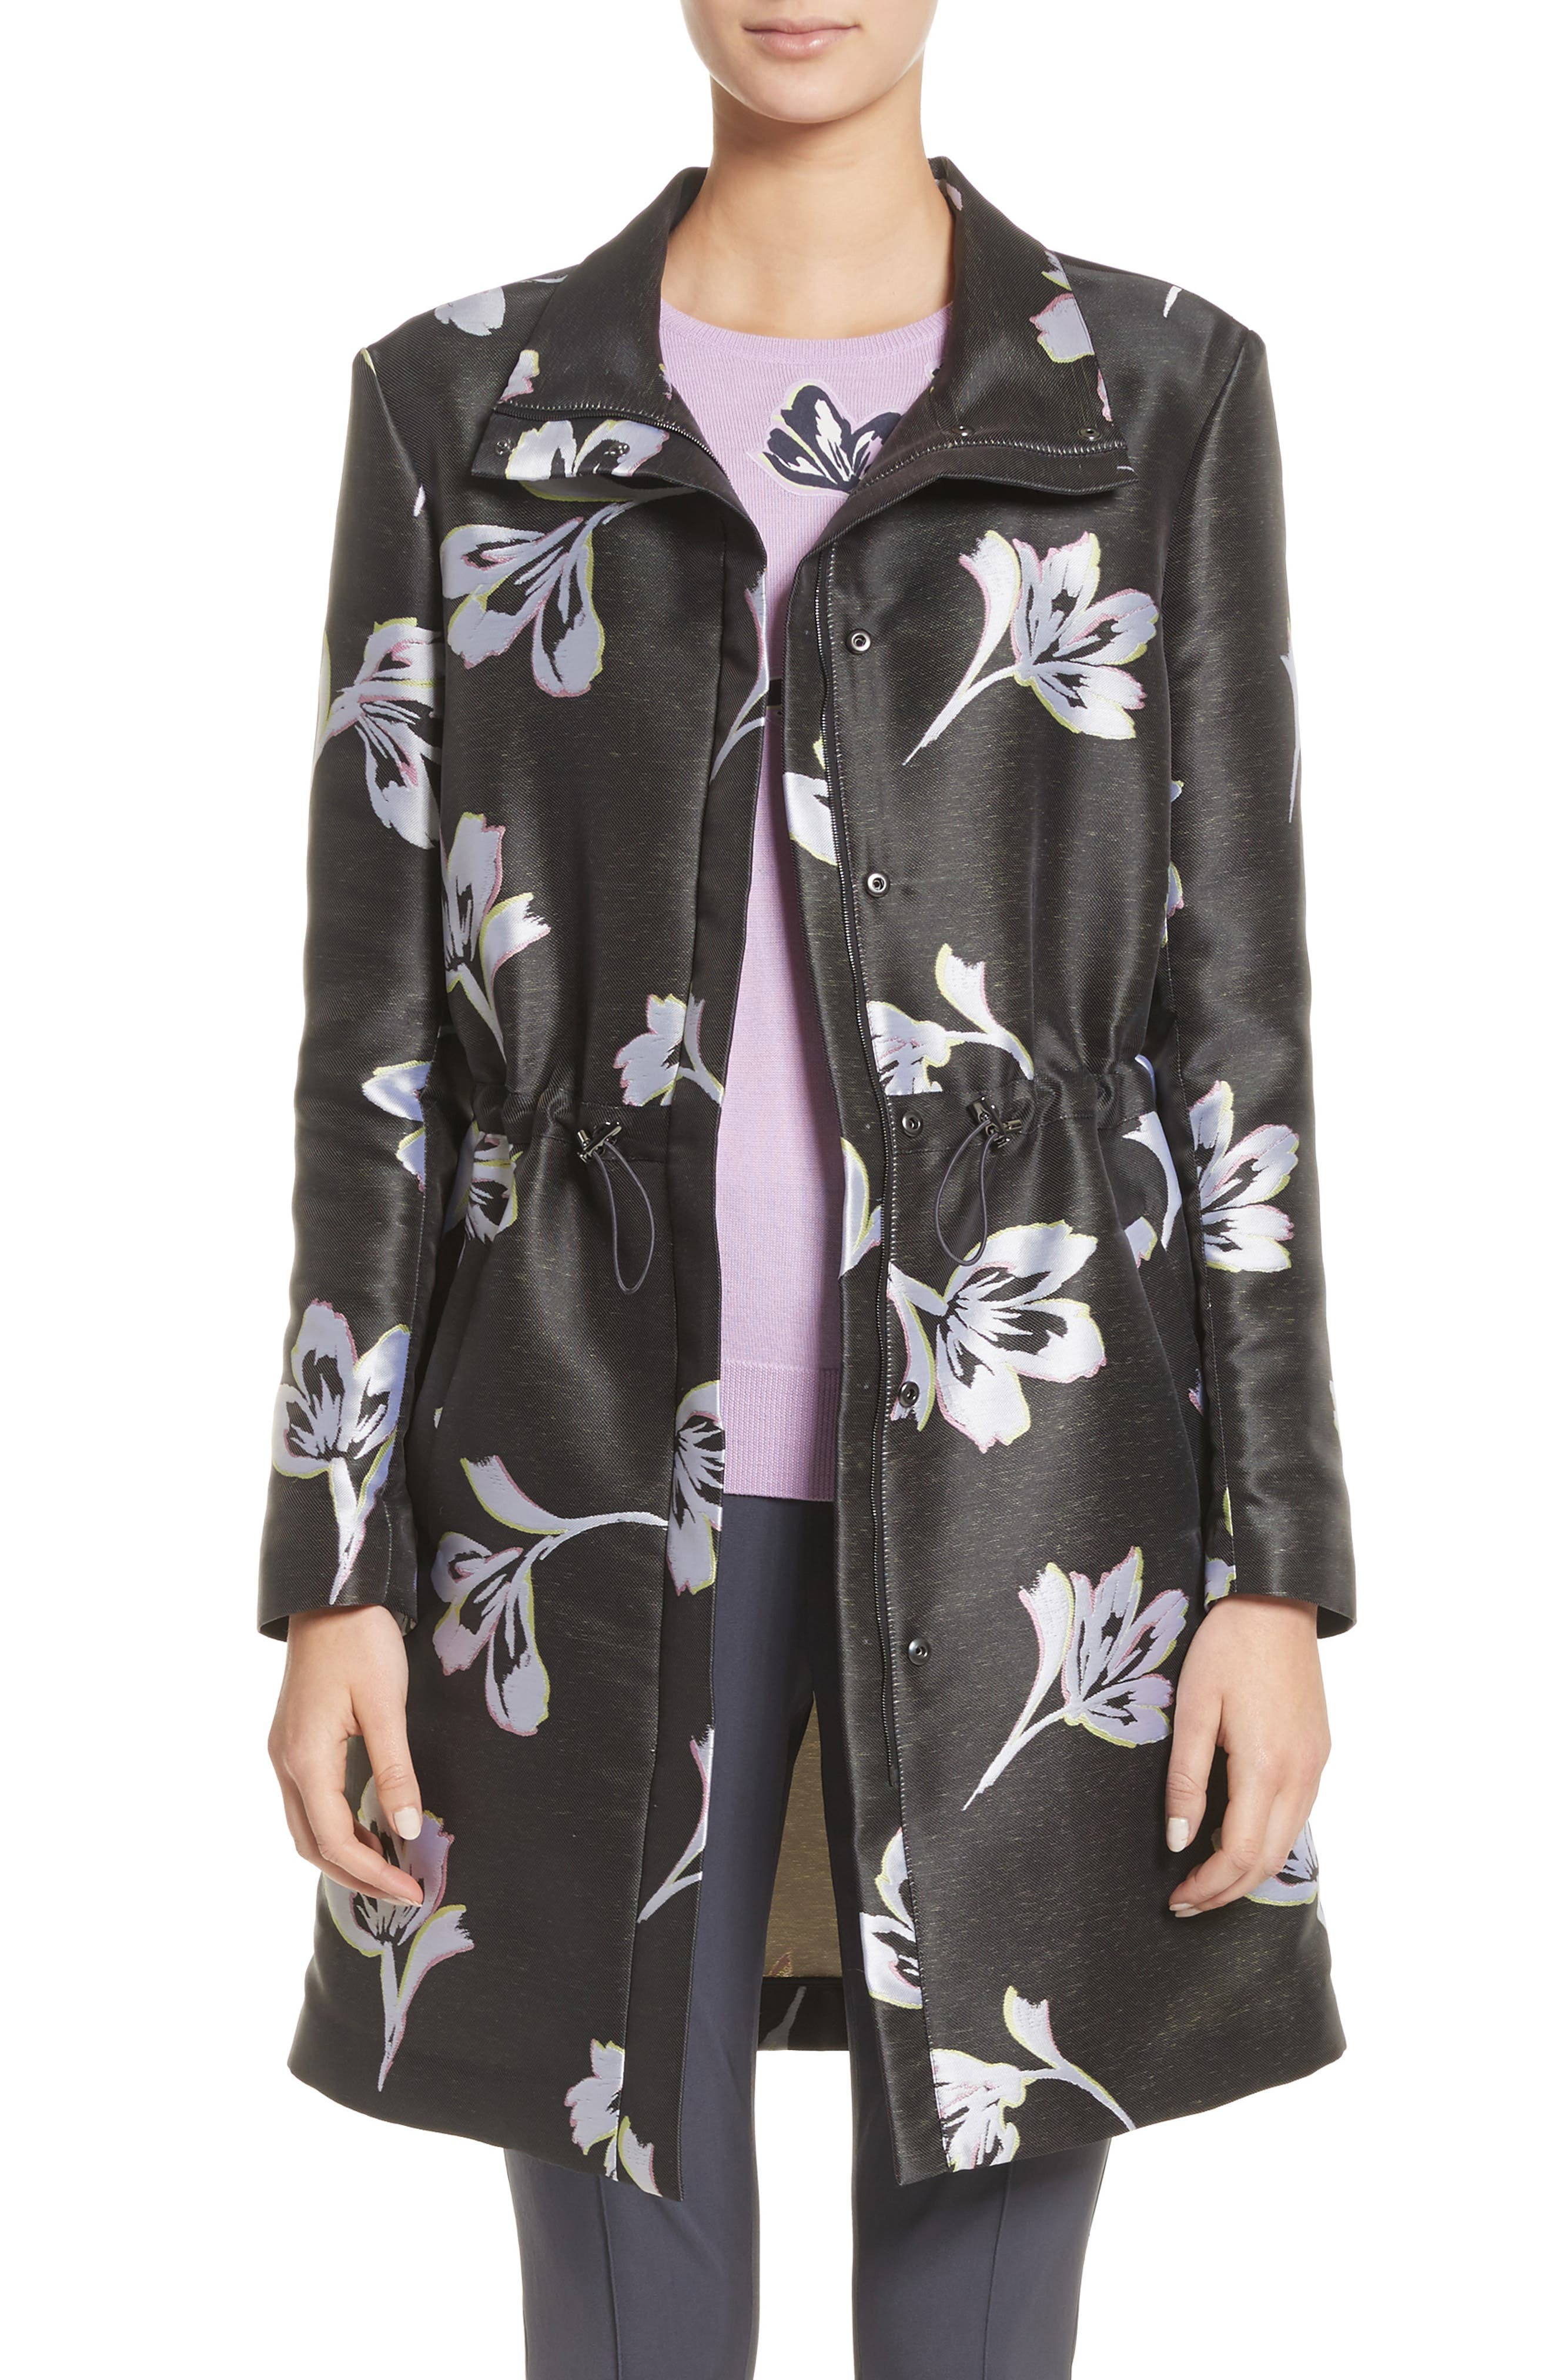 Falling Flower Jacquard Coat,                         Main,                         color, Anthracite Multi